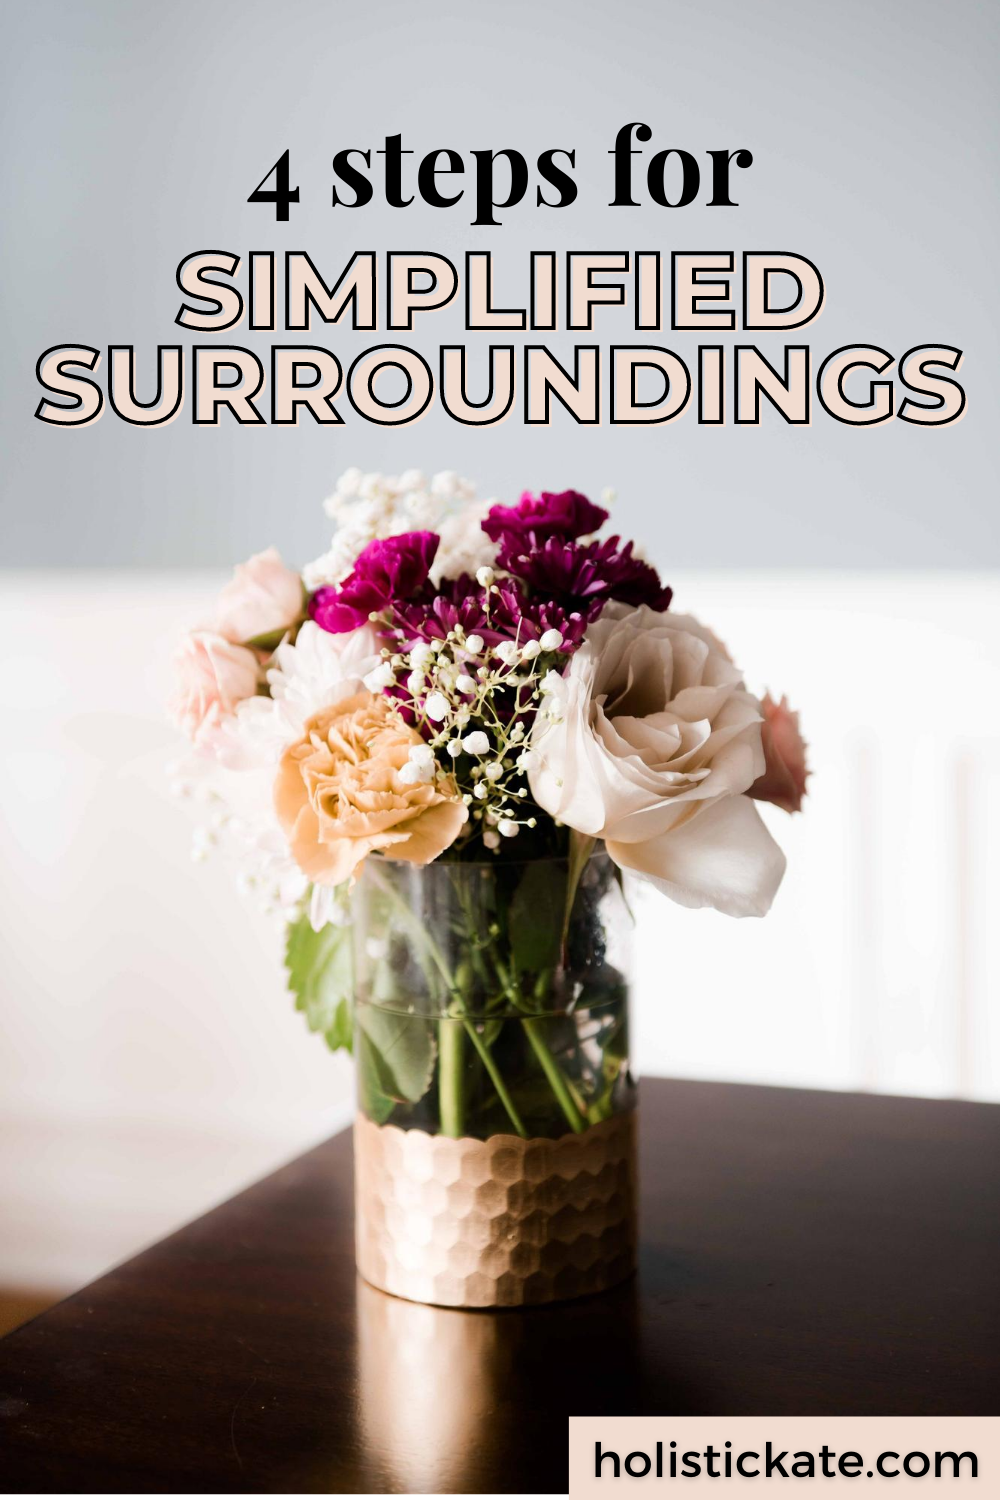 4 Steps for Simplified Surroundings